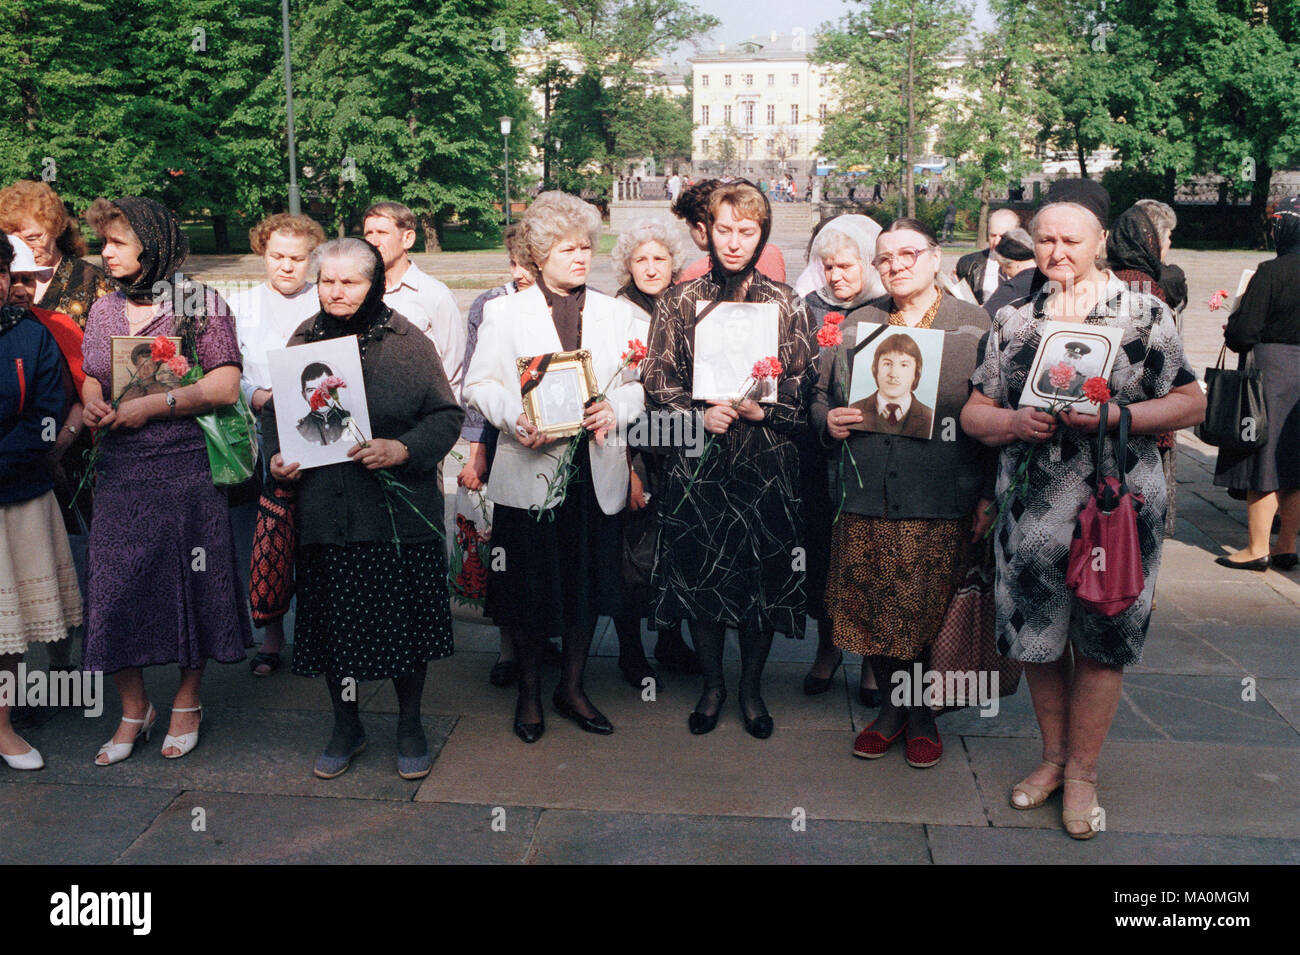 Moscow, Russia - July 10, 1992: Remembrance day of dead russian soldiers organised by Committee of Soldiers' Mothers of Russia. Mothers holding portraits of their perished sons and flowers to lay them on the tomb of unknown soldier. - Stock Image